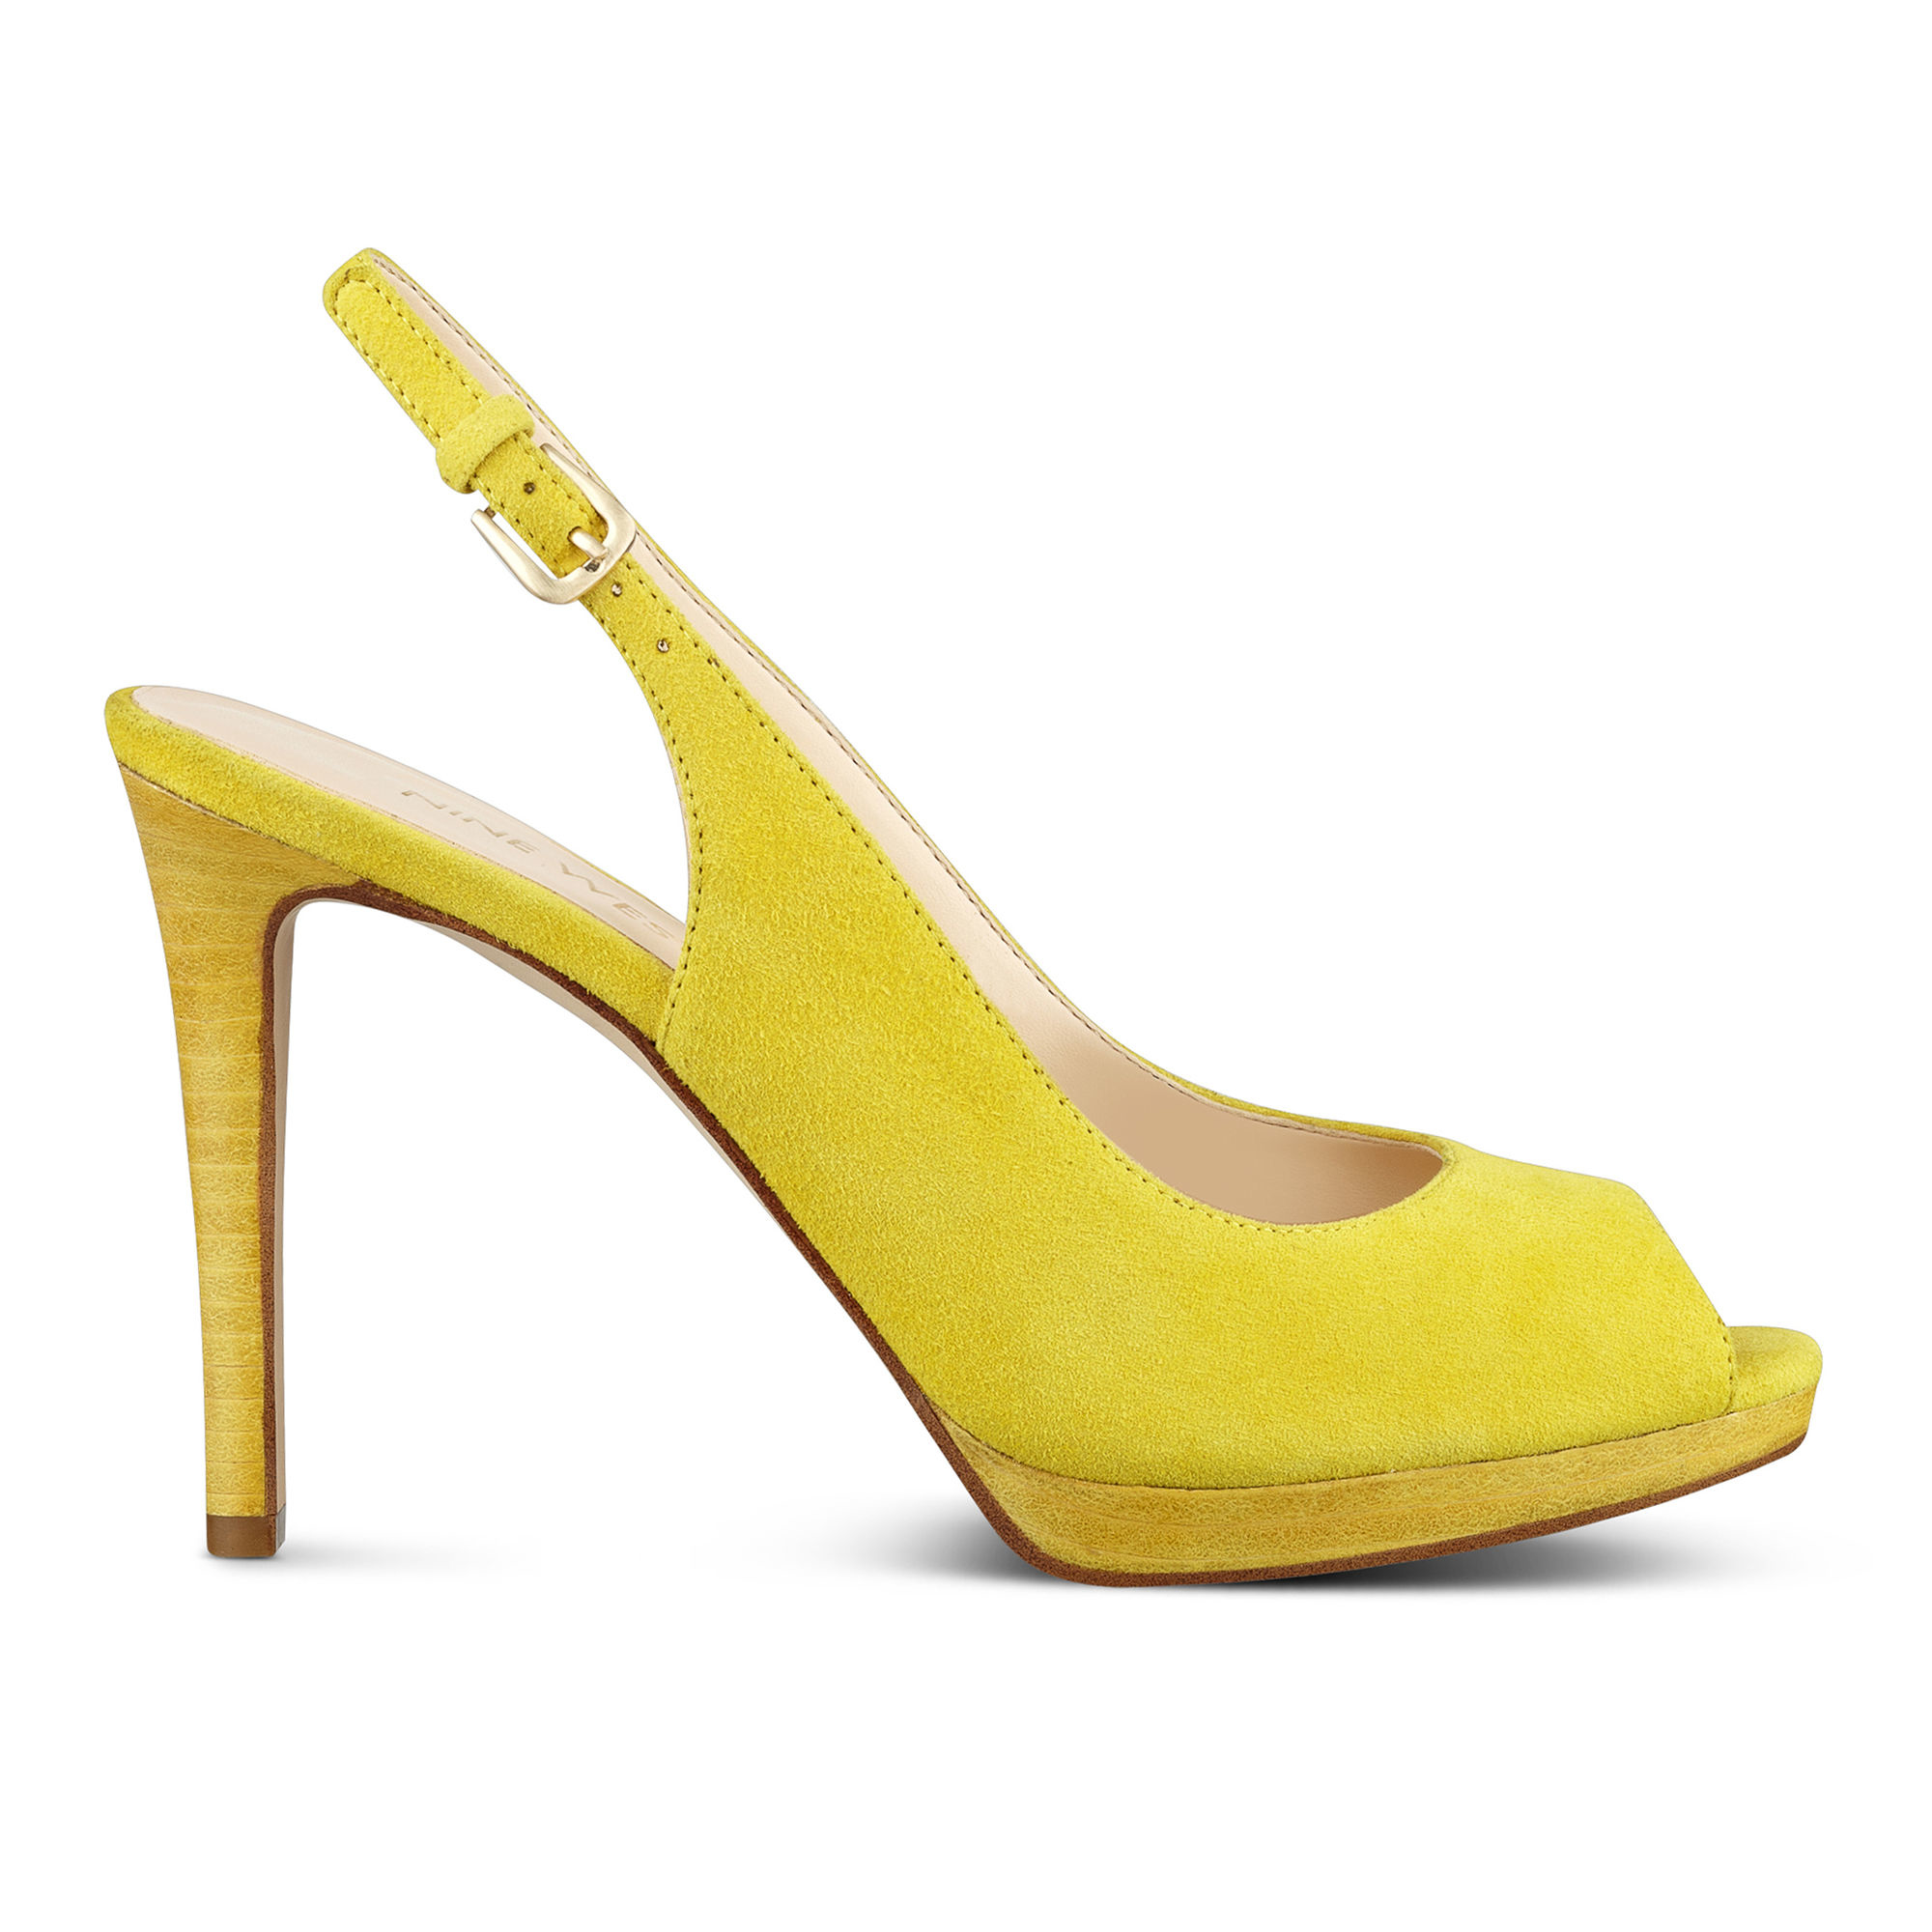 b87a6cad2be Lyst - Nine West Emilyna Slingback Pumps in Yellow